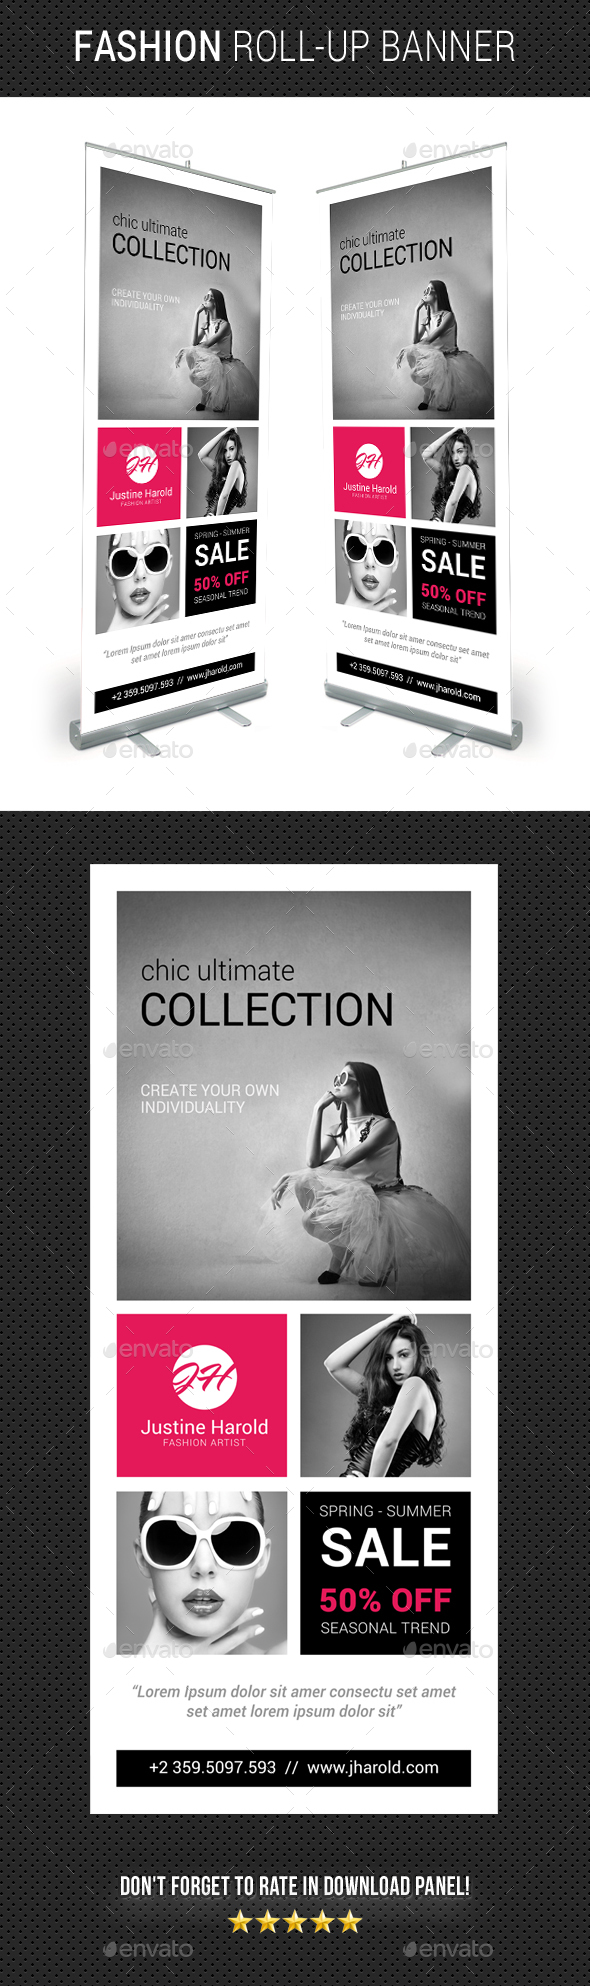 Fashion Roll-Up Banner 04 - Signage Print Templates